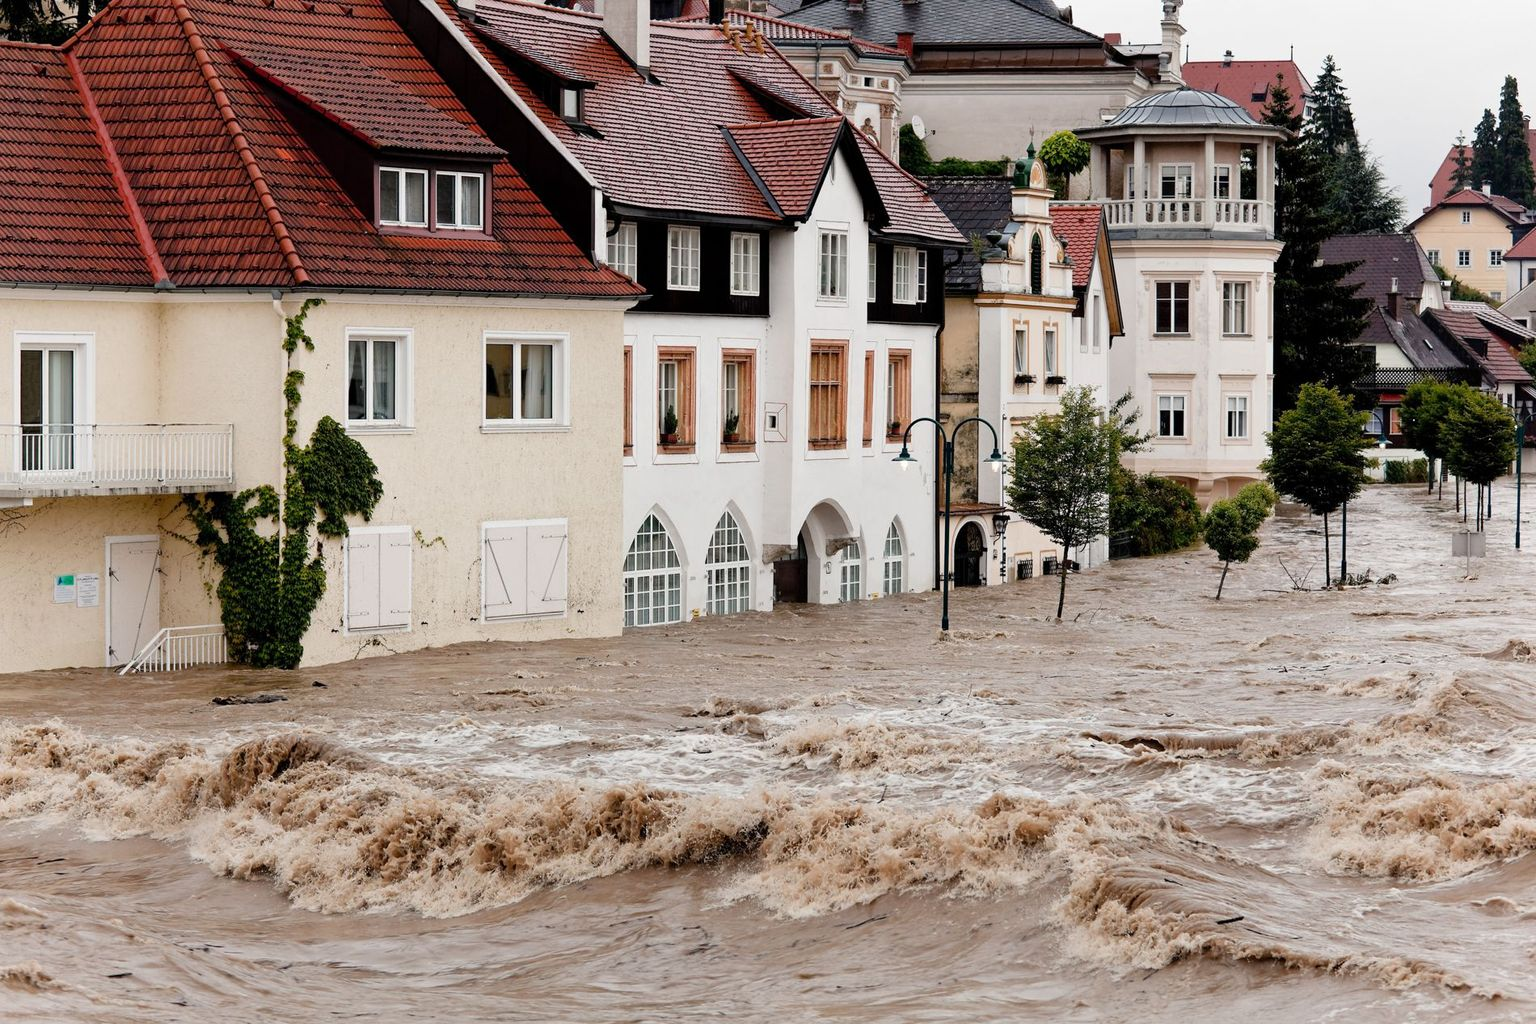 Floods in the streets of Steyr, Austria